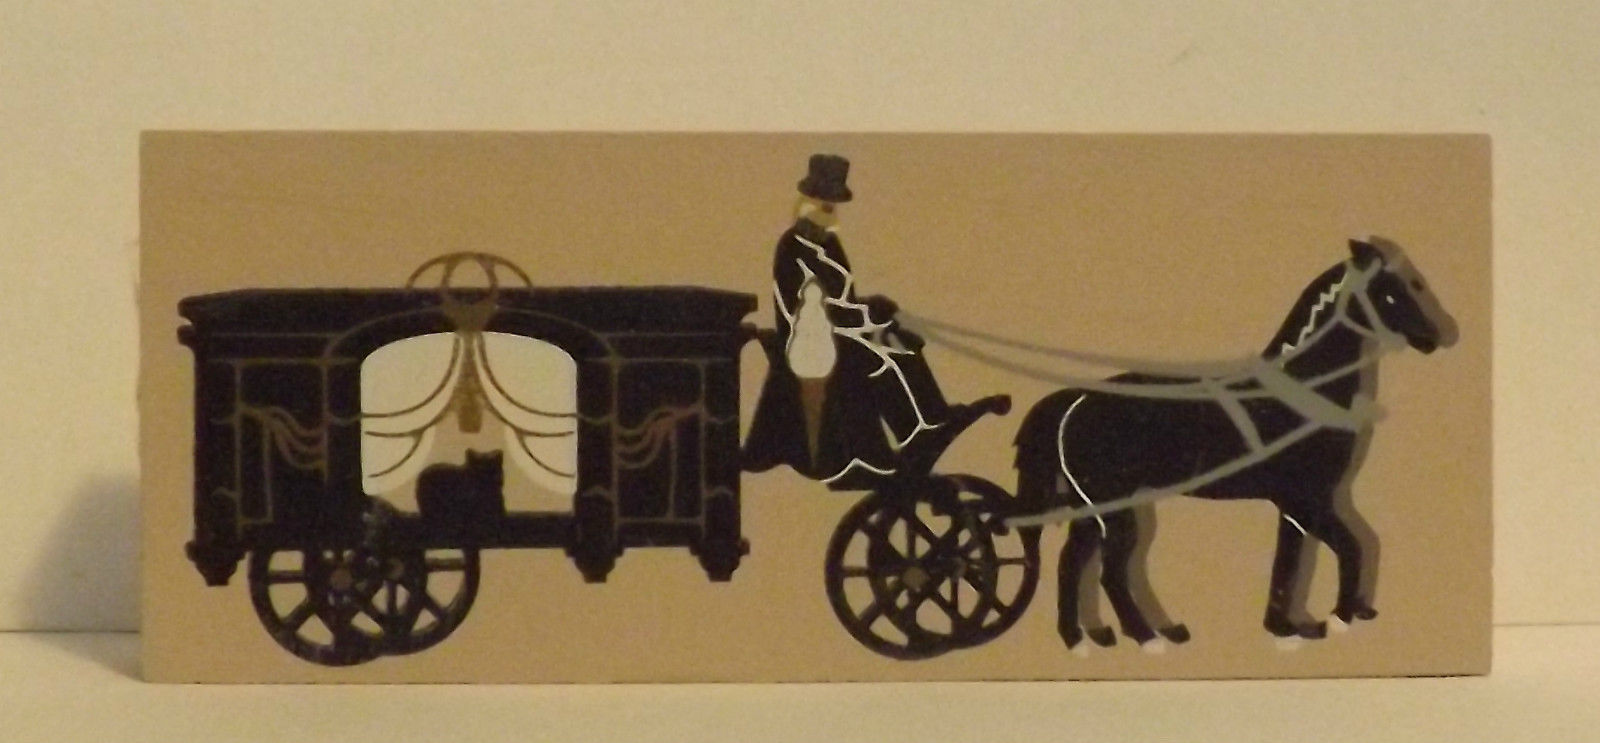 Cats Meow Accessory Horse Drawn Carriage 1995